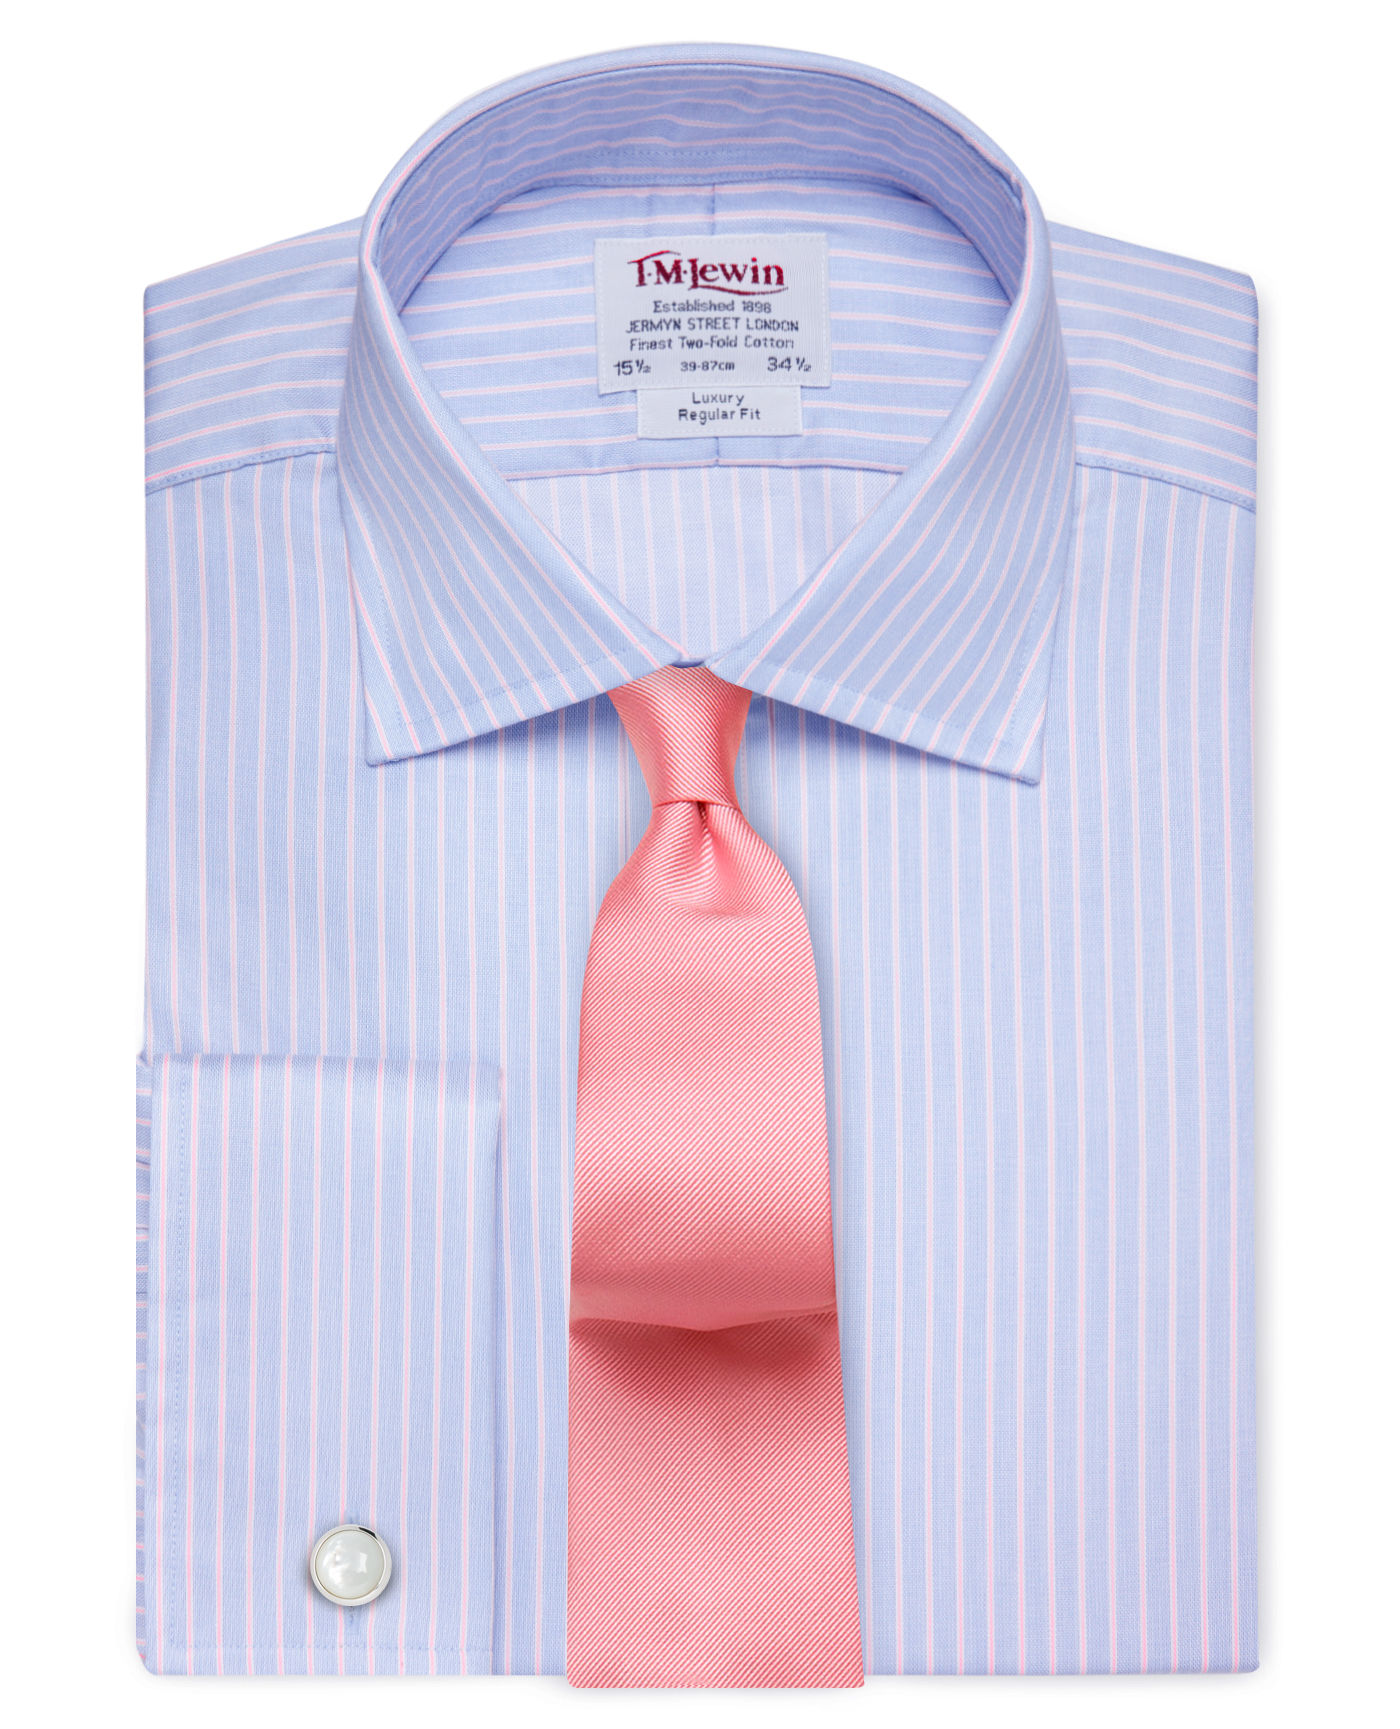 T.M.Lewin Regular Fit Blue & Pink Textured Overstripe Shirt